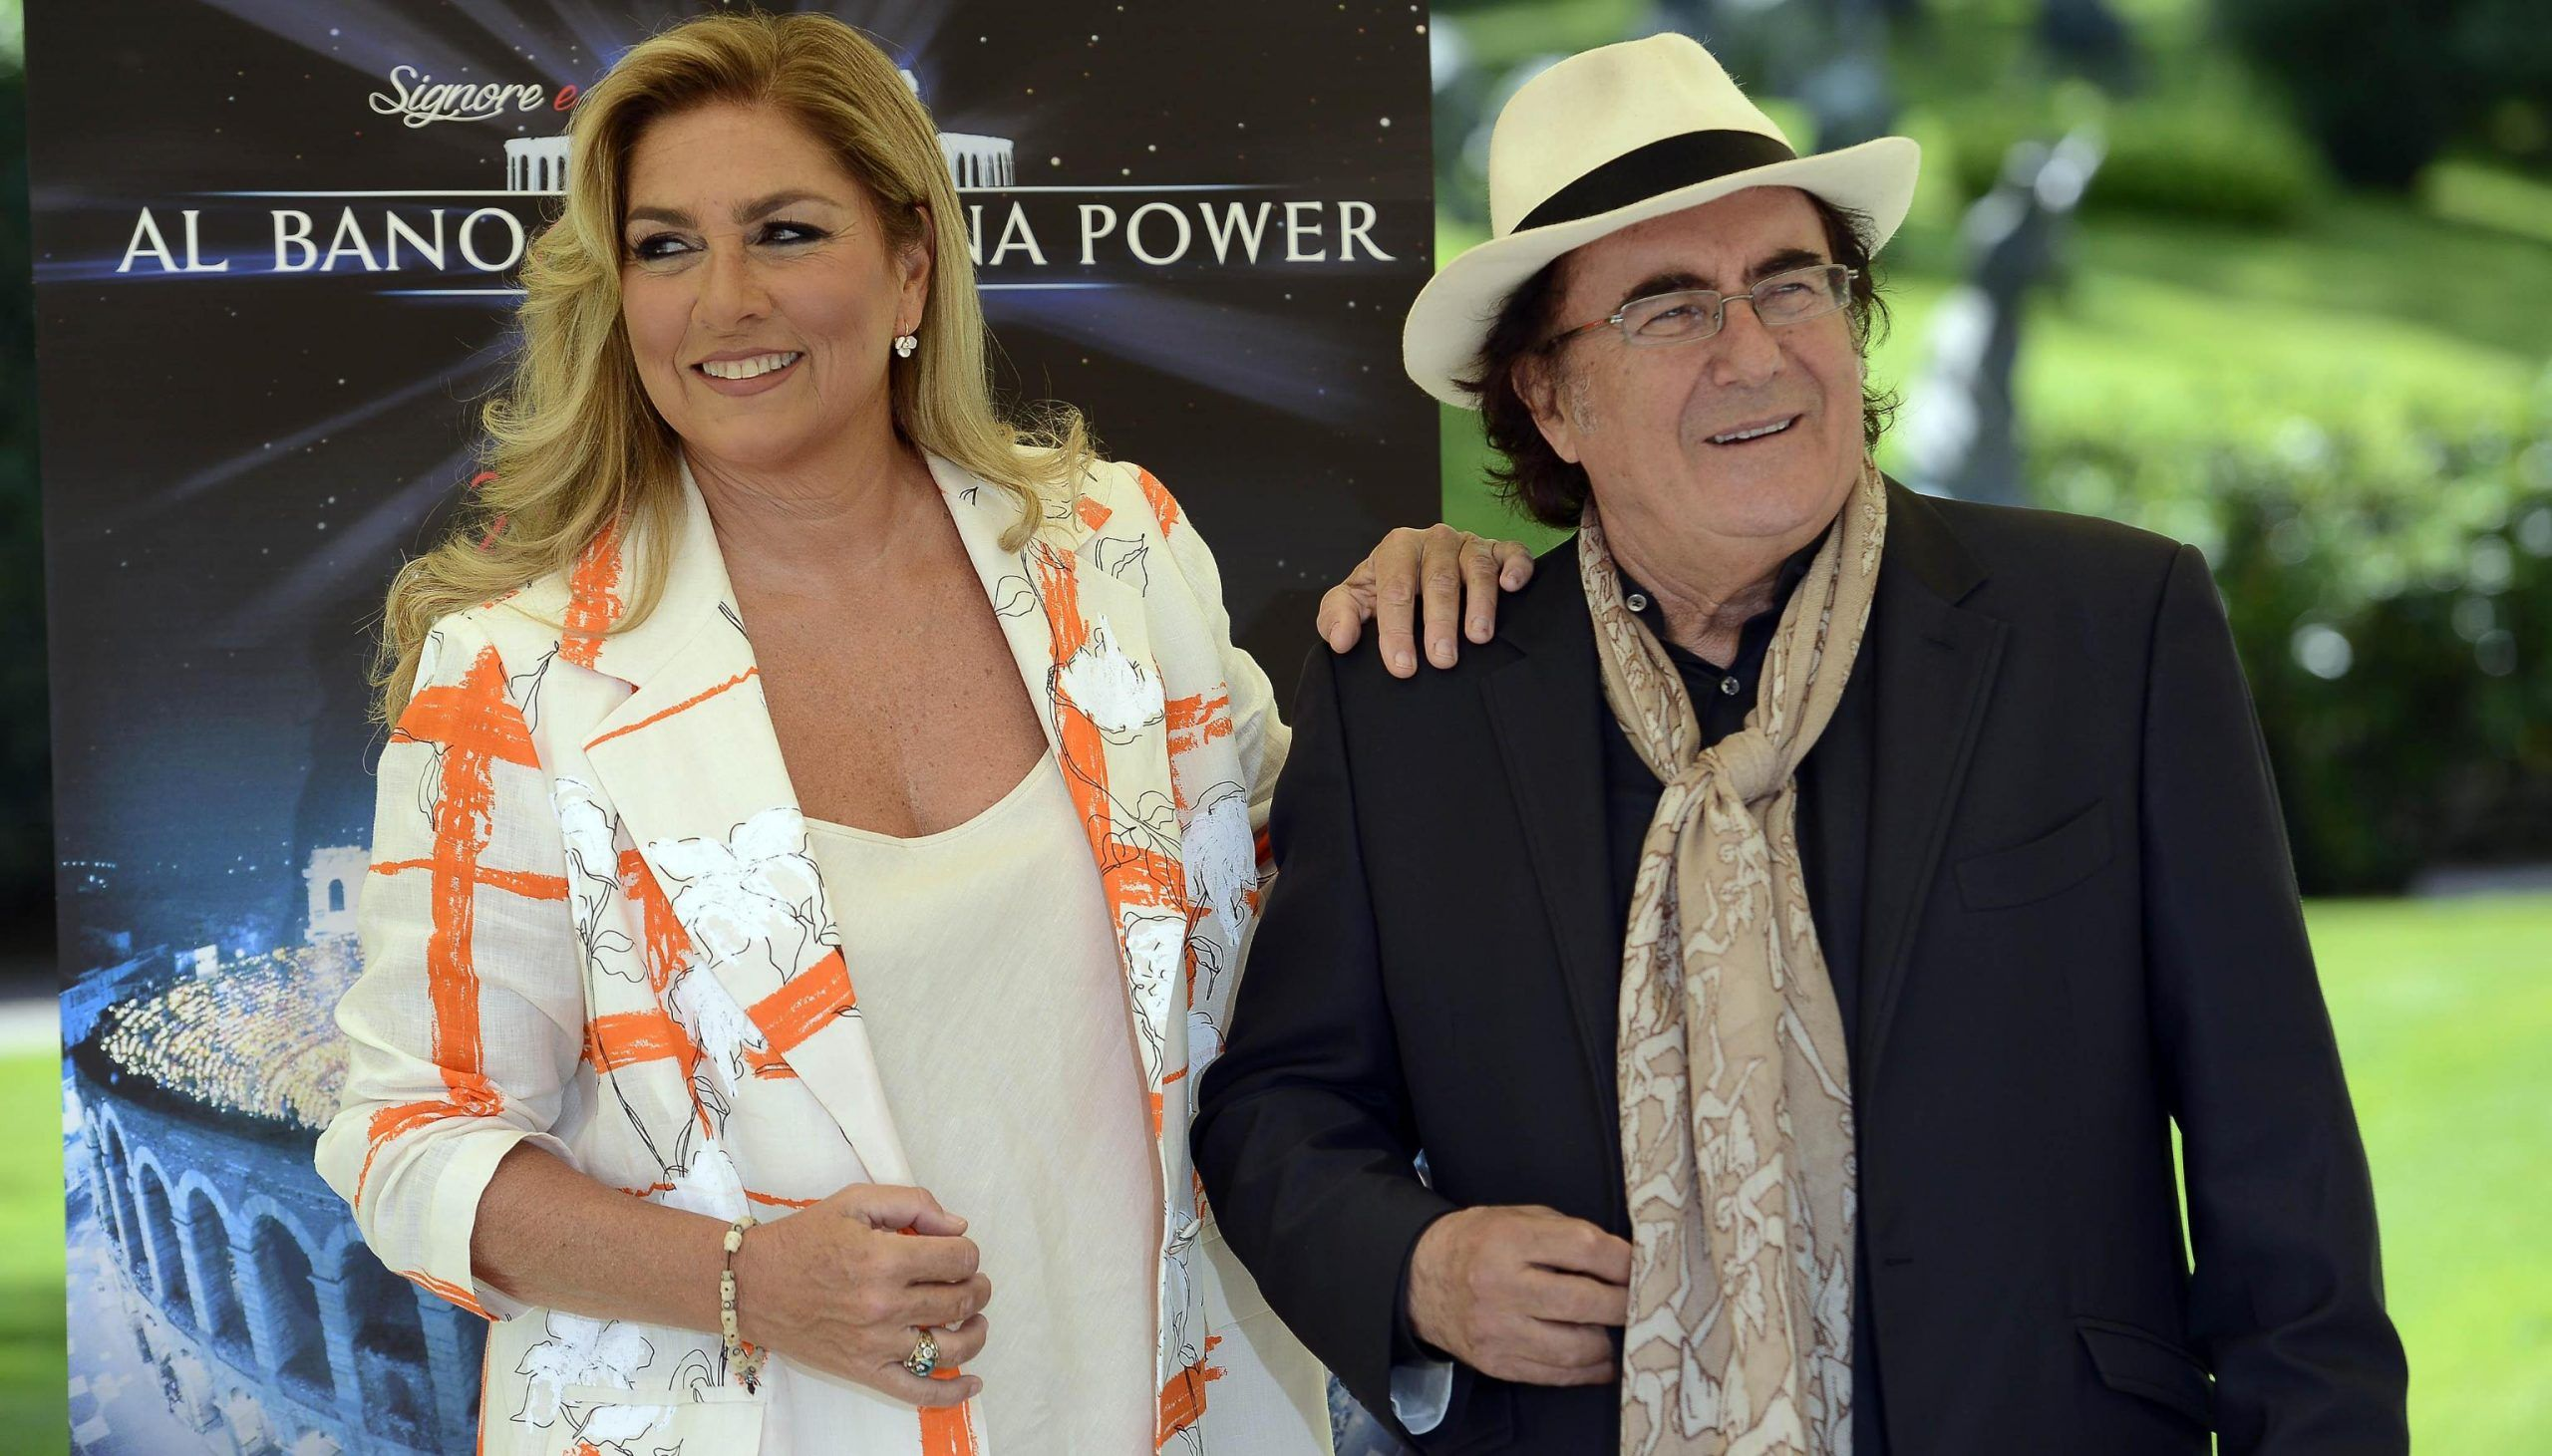 Al Bano and Romina Power during a photocall in Rome